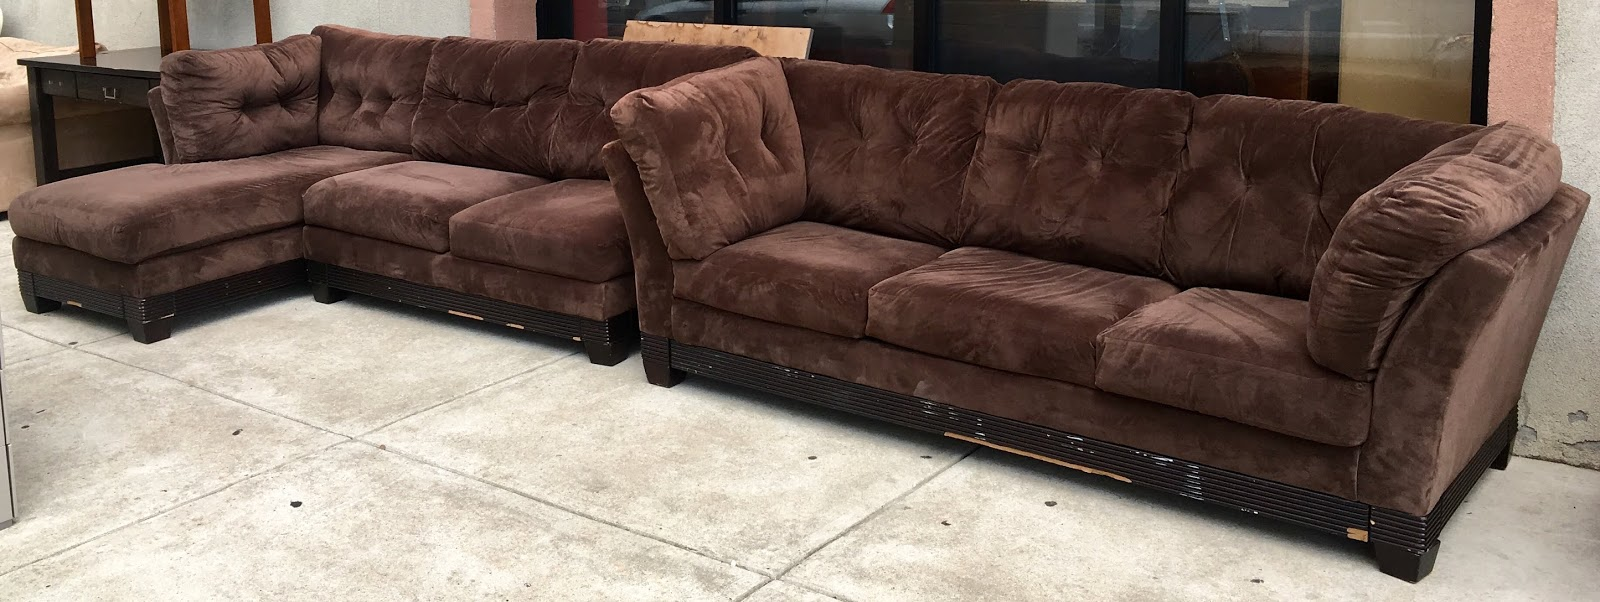 Tremendous Uhuru Furniture Collectibles Dark Brown Tufted 2 Piece Ncnpc Chair Design For Home Ncnpcorg